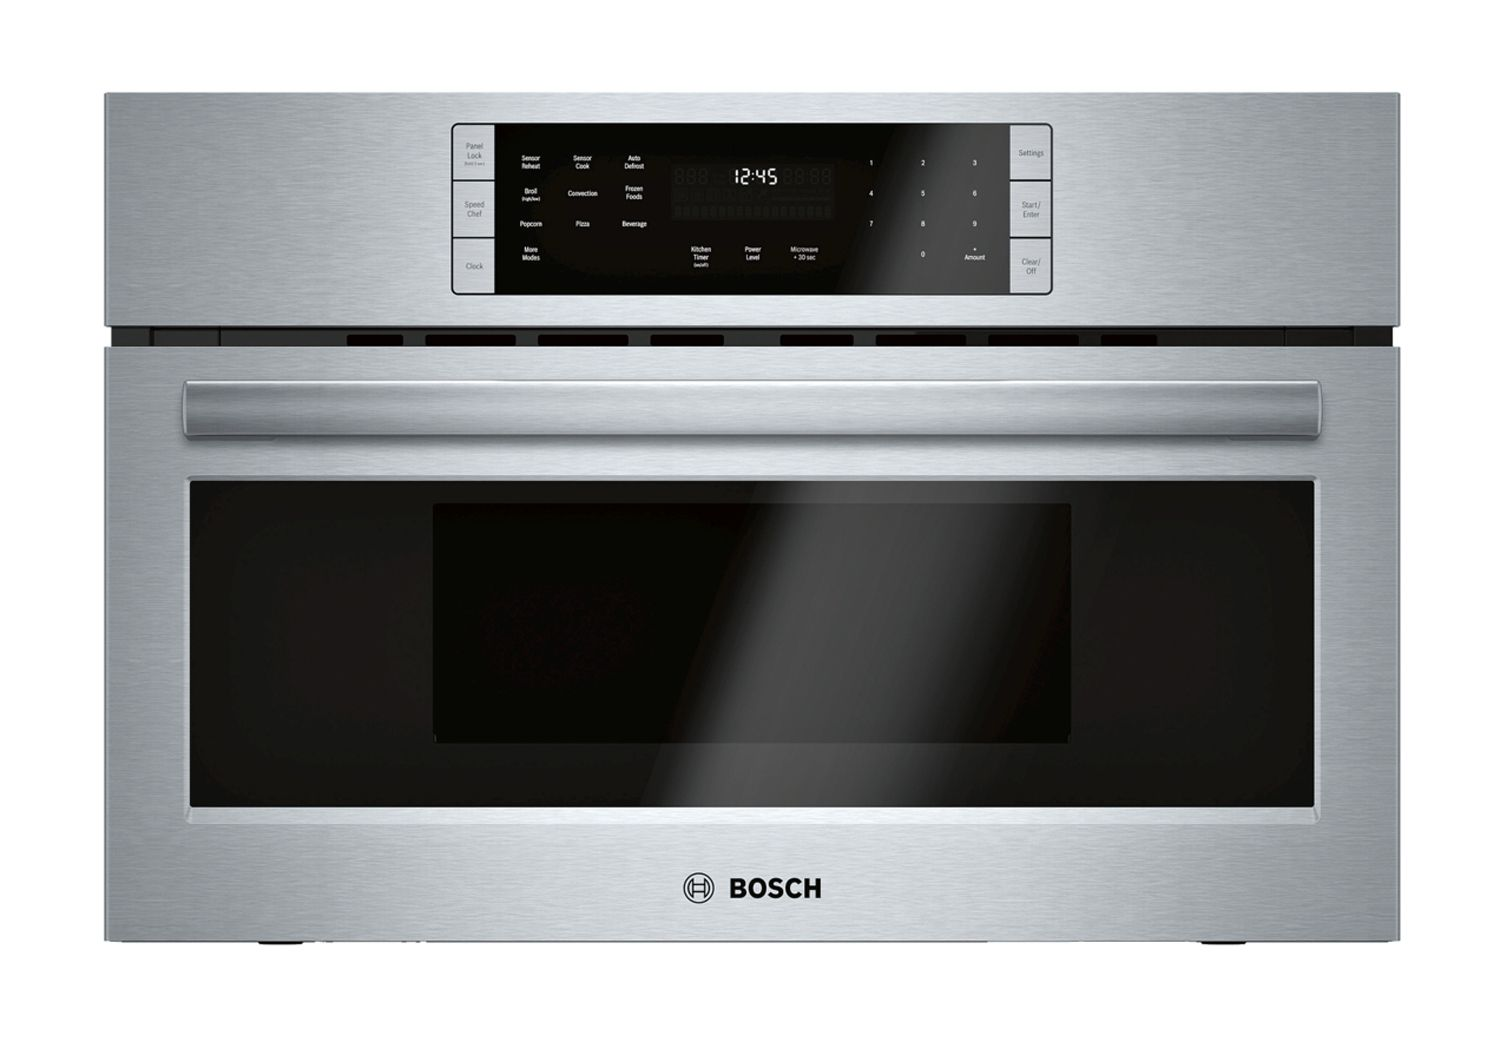 "Bosch 800 Series 30"" Stainless Steel Convection Speed Built-In Microwave  Oven - HMC80252UC"